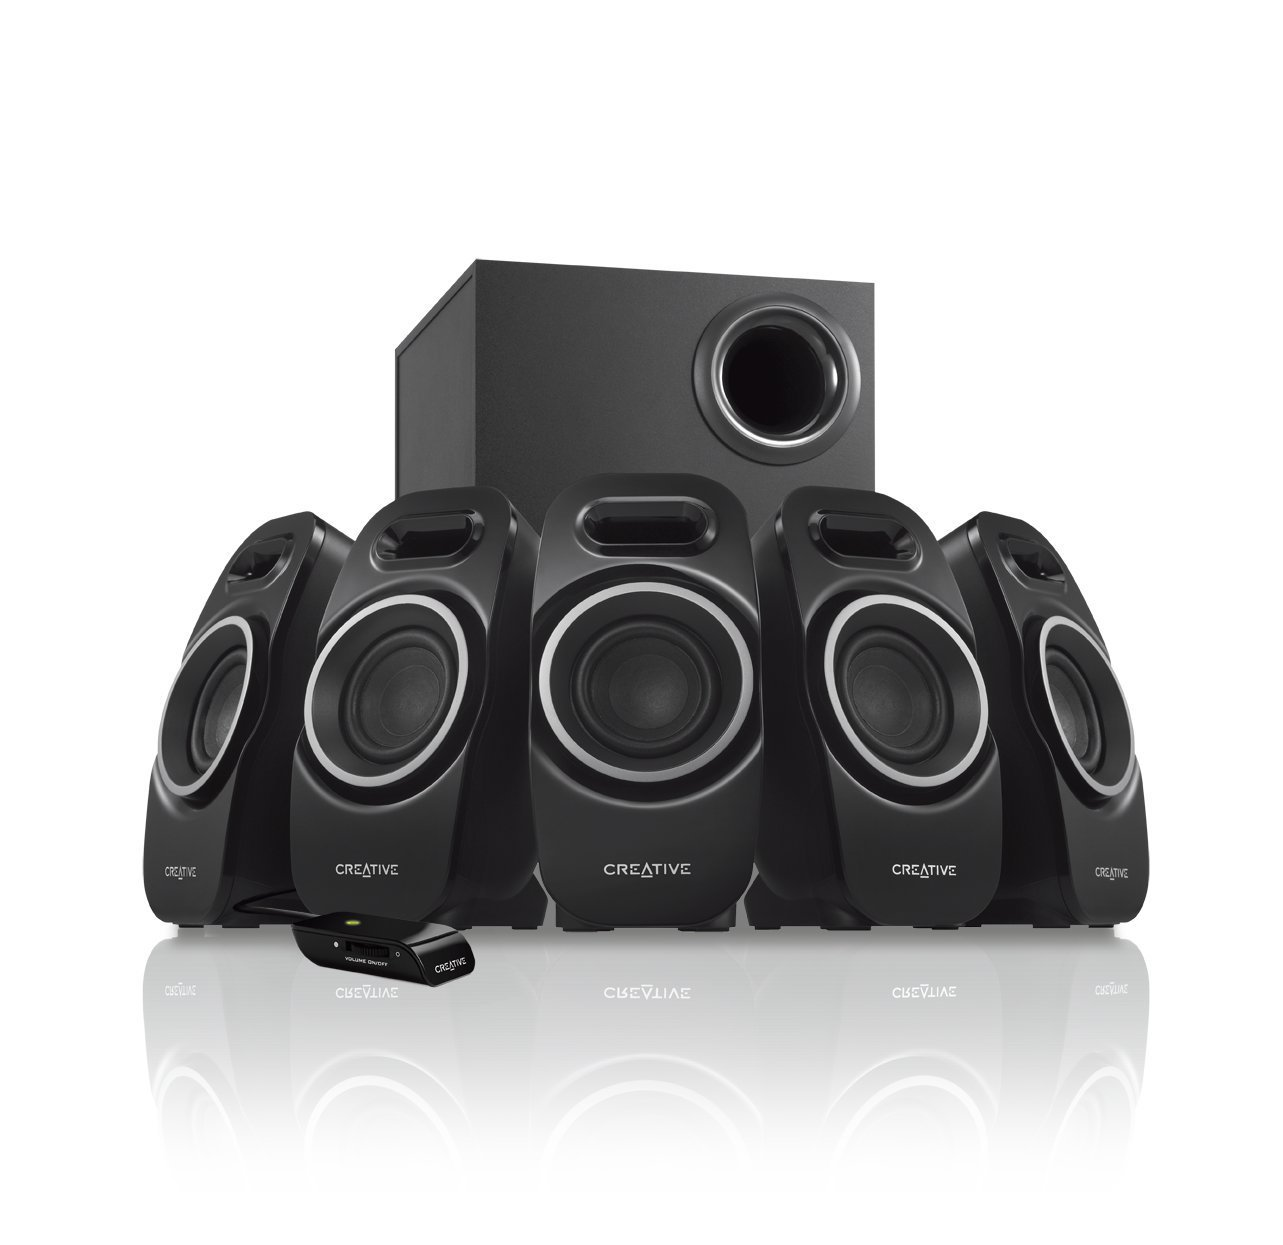 Creative A550 5.1 Gaming Speakers